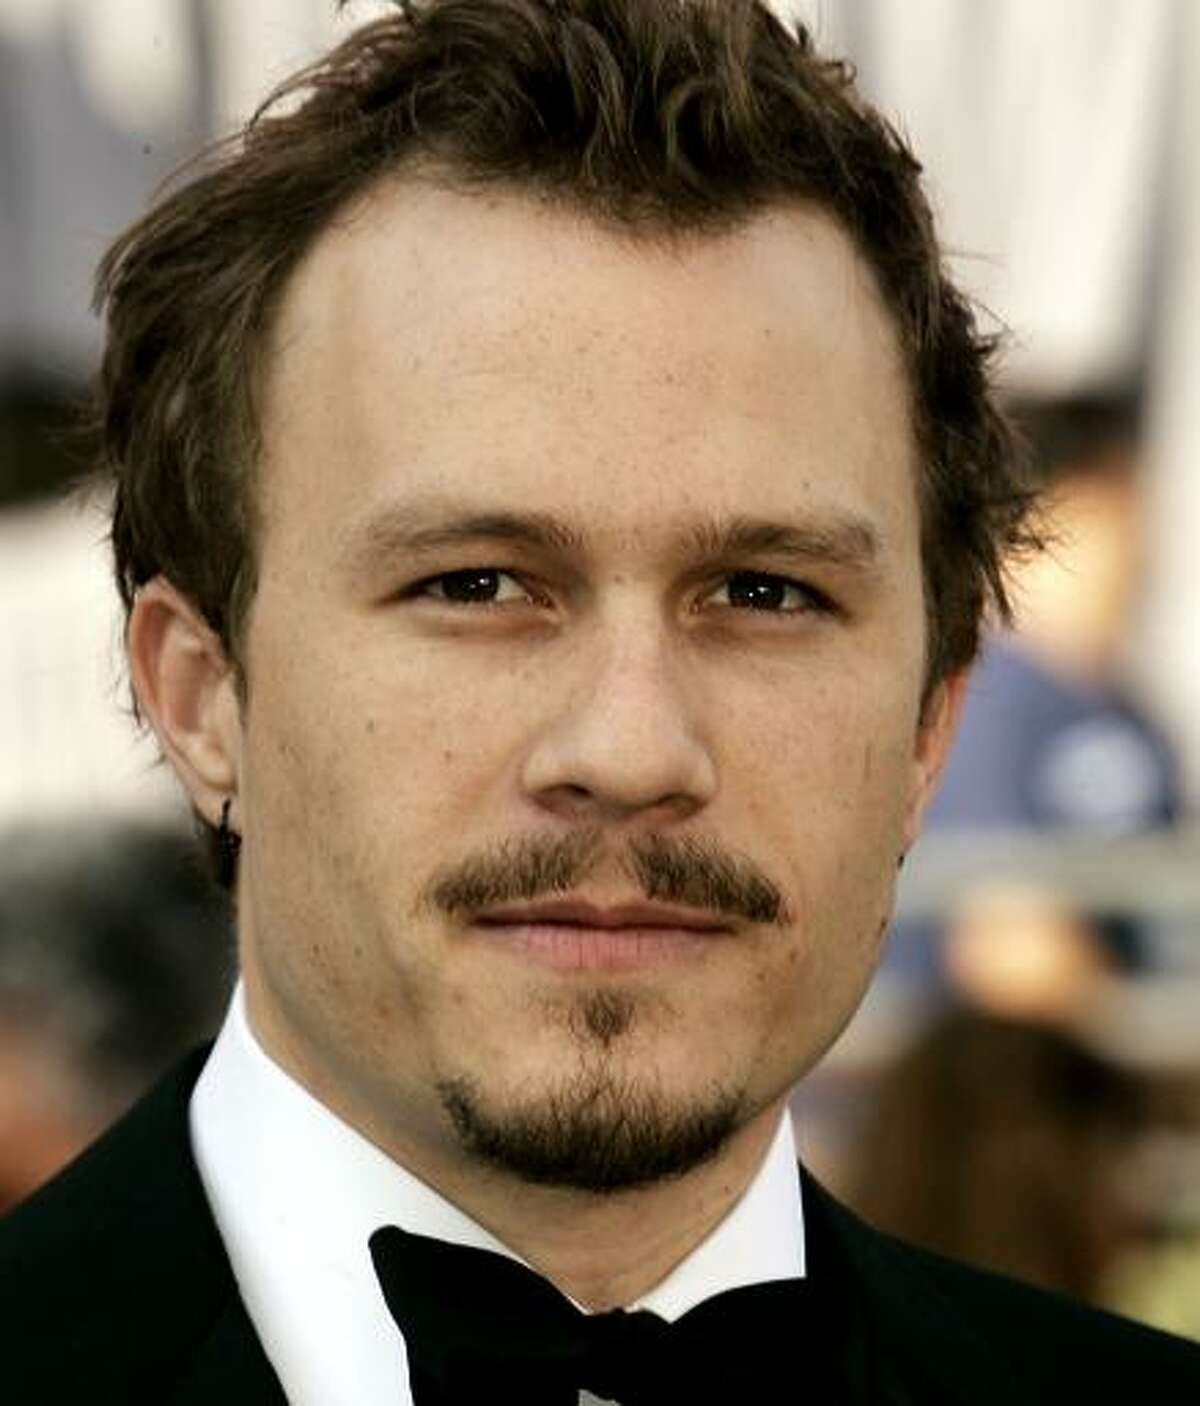 Heath Ledger died so young that journalists did not have an advance obit written.